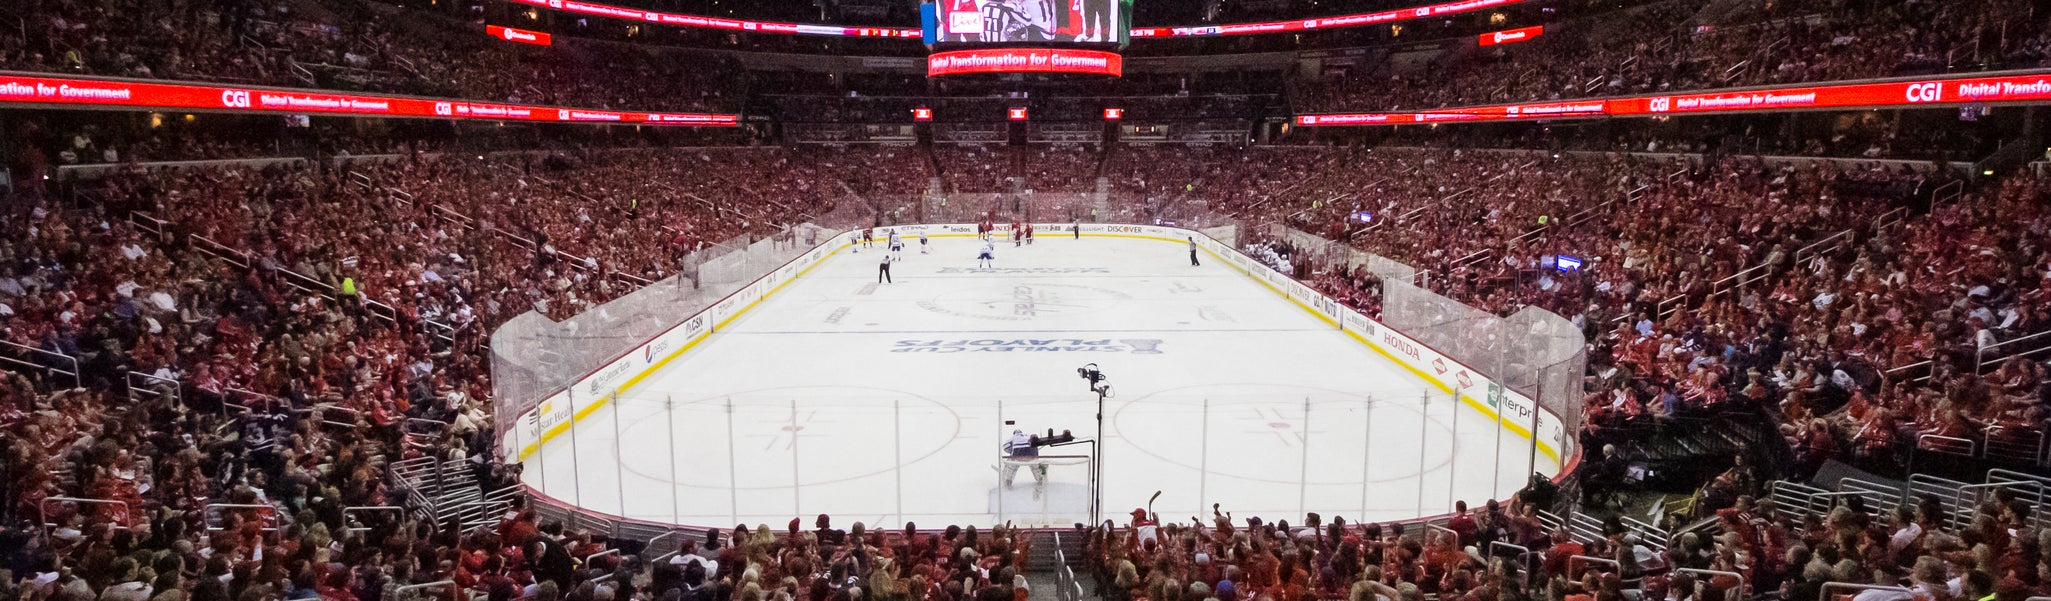 Seat view from LL Preferred 116 at Capital One Arena